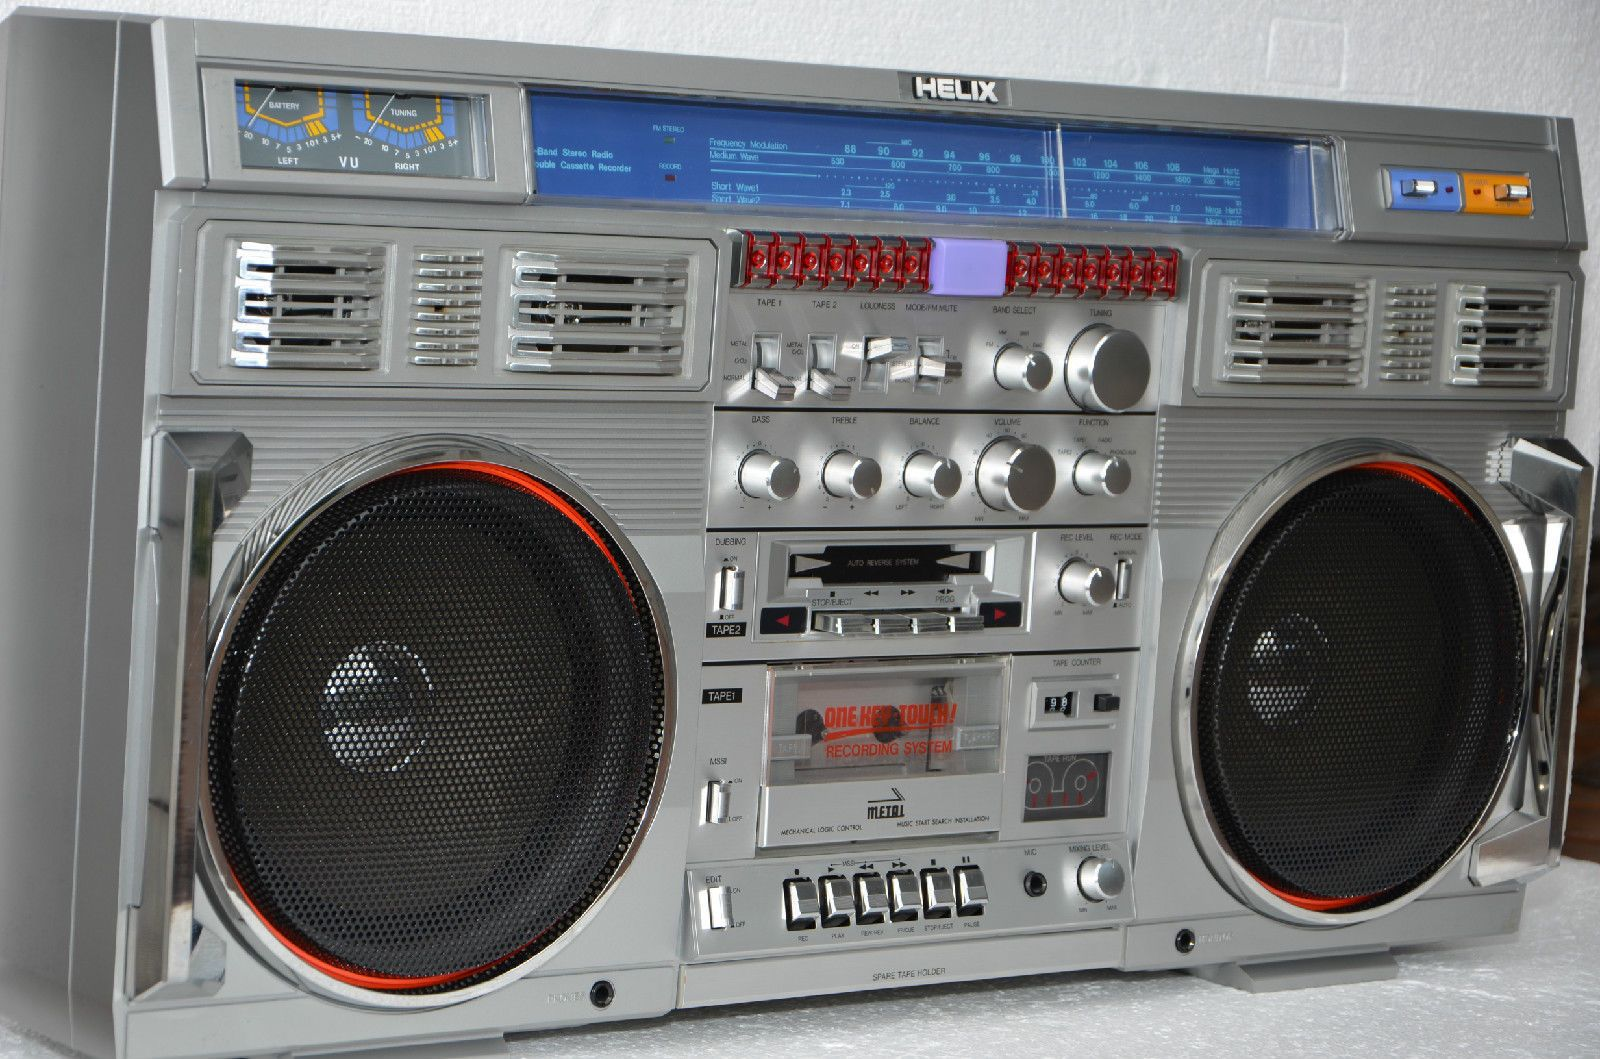 80s Boombox Stock Photo & More Pictures of 1980-1989 - iStock  |80s Boombox